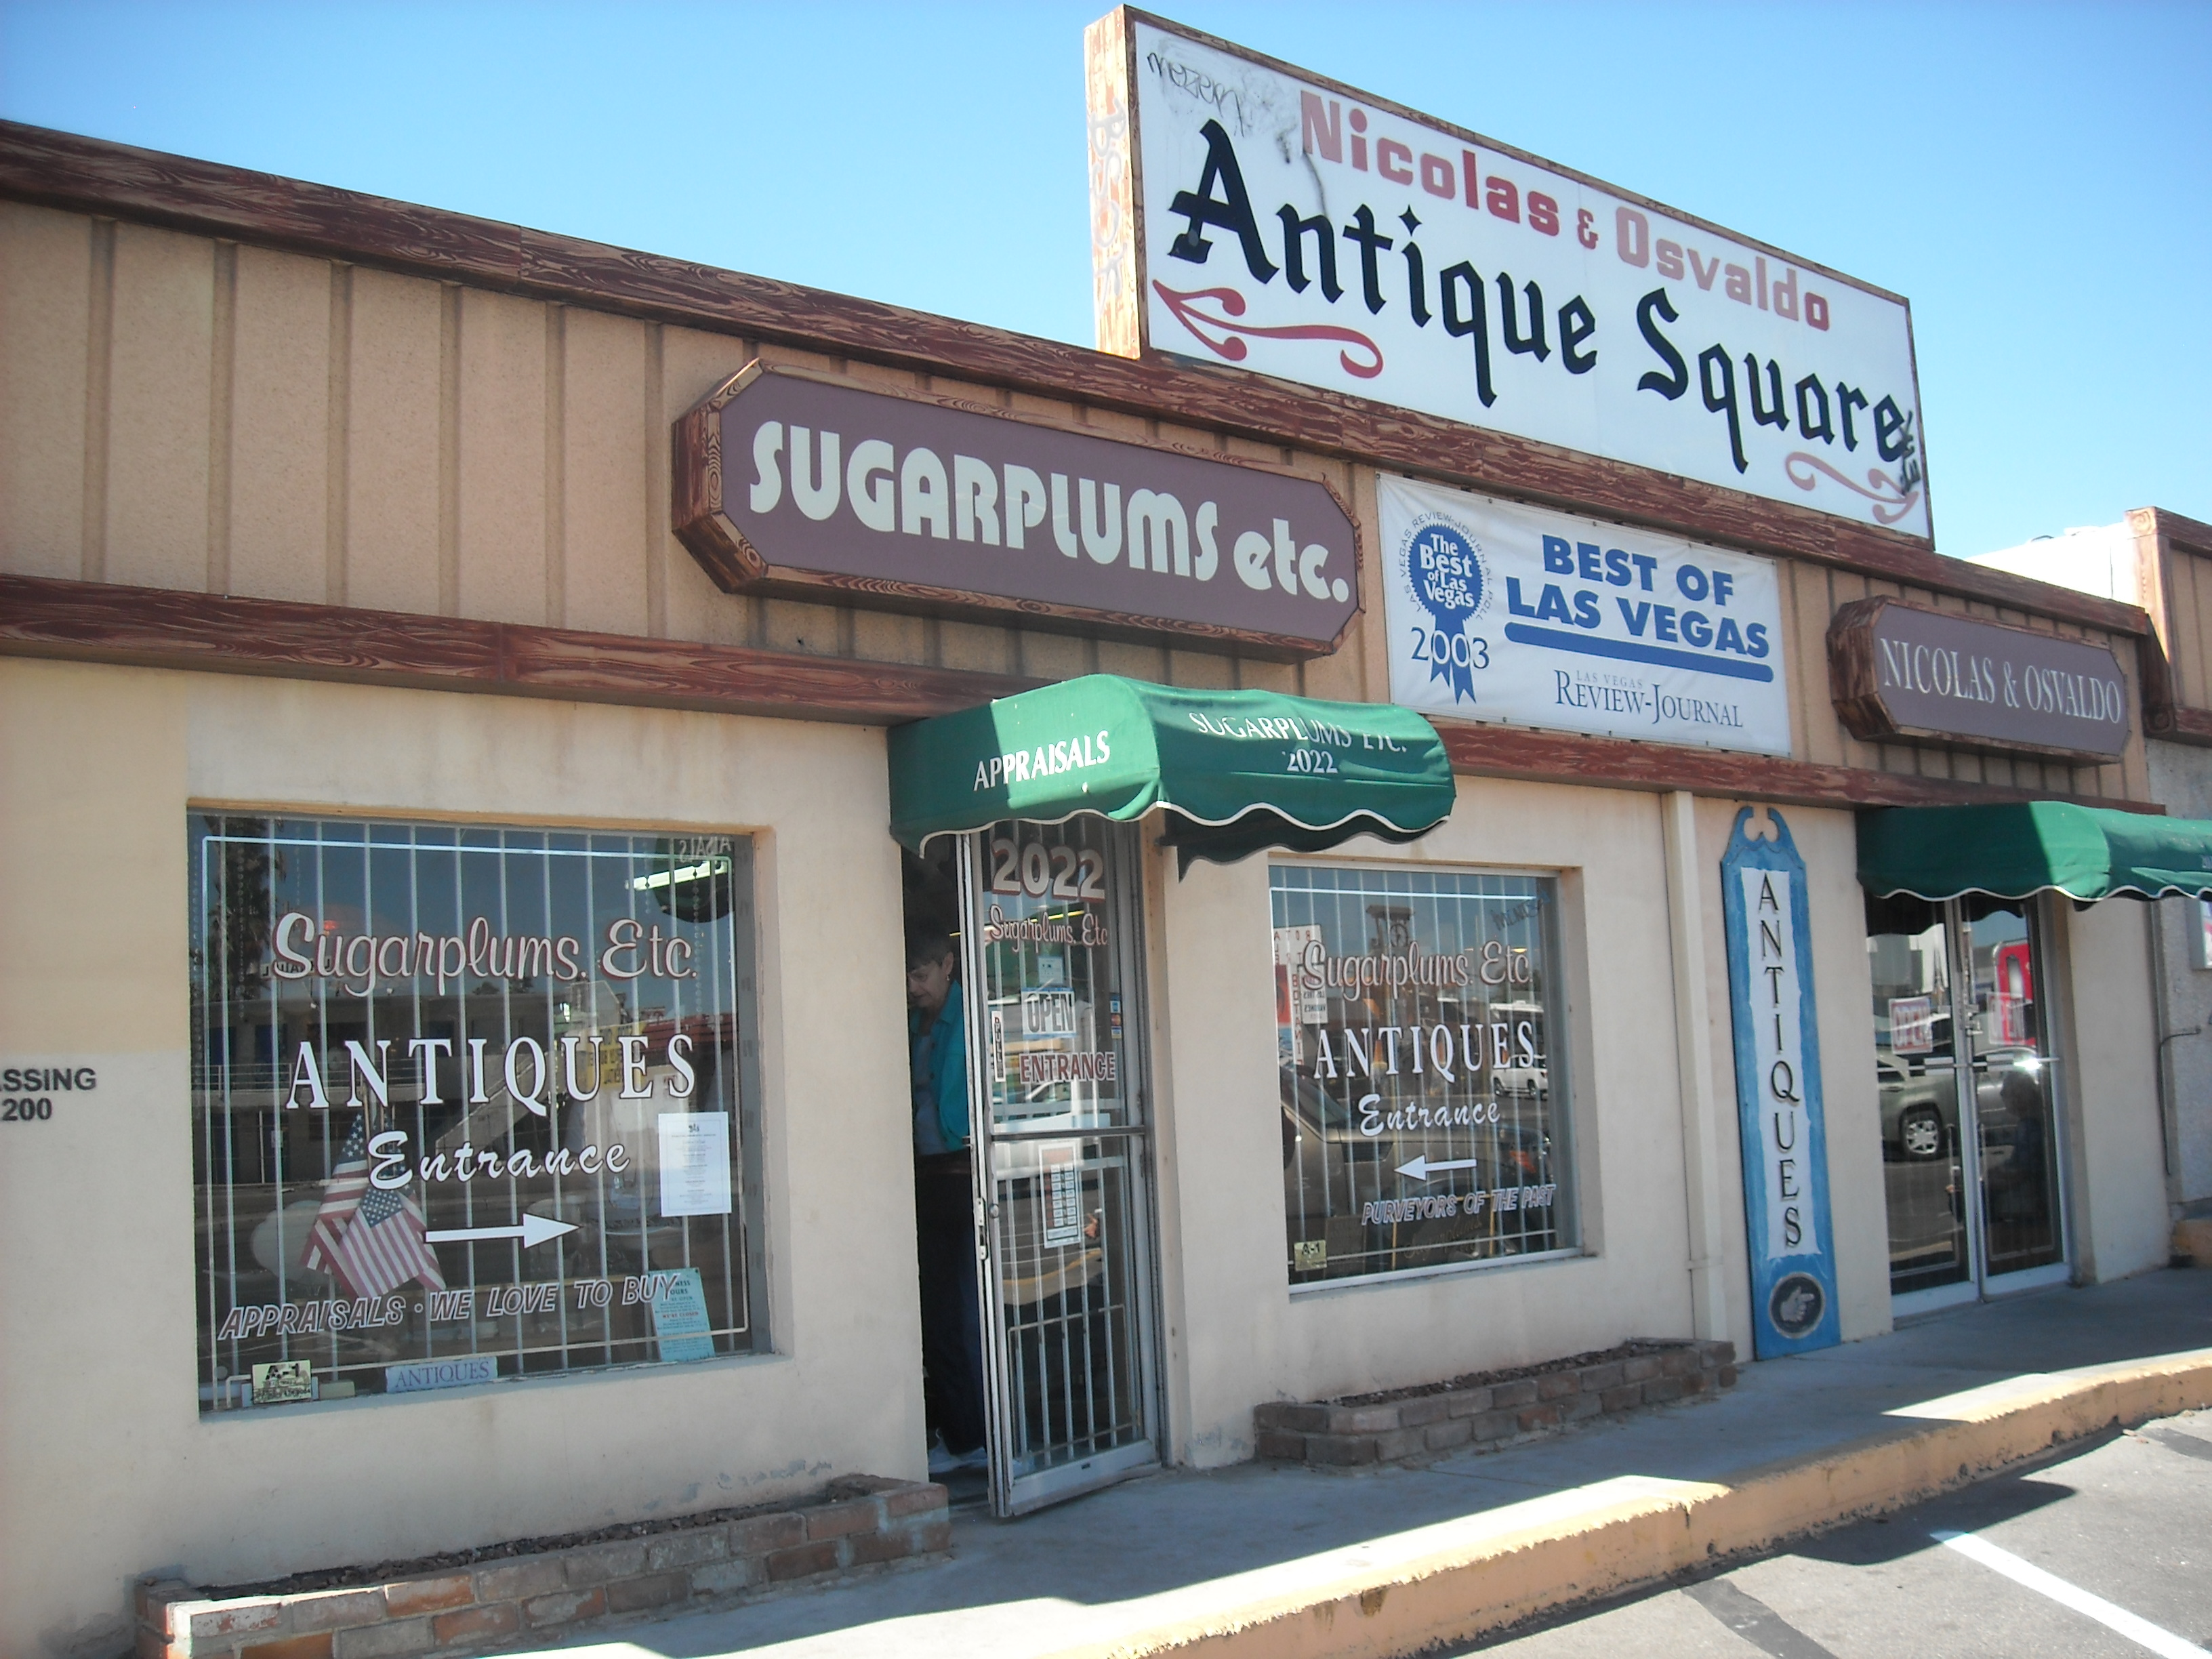 Antiquing in Las Vegas: A Winning Combination